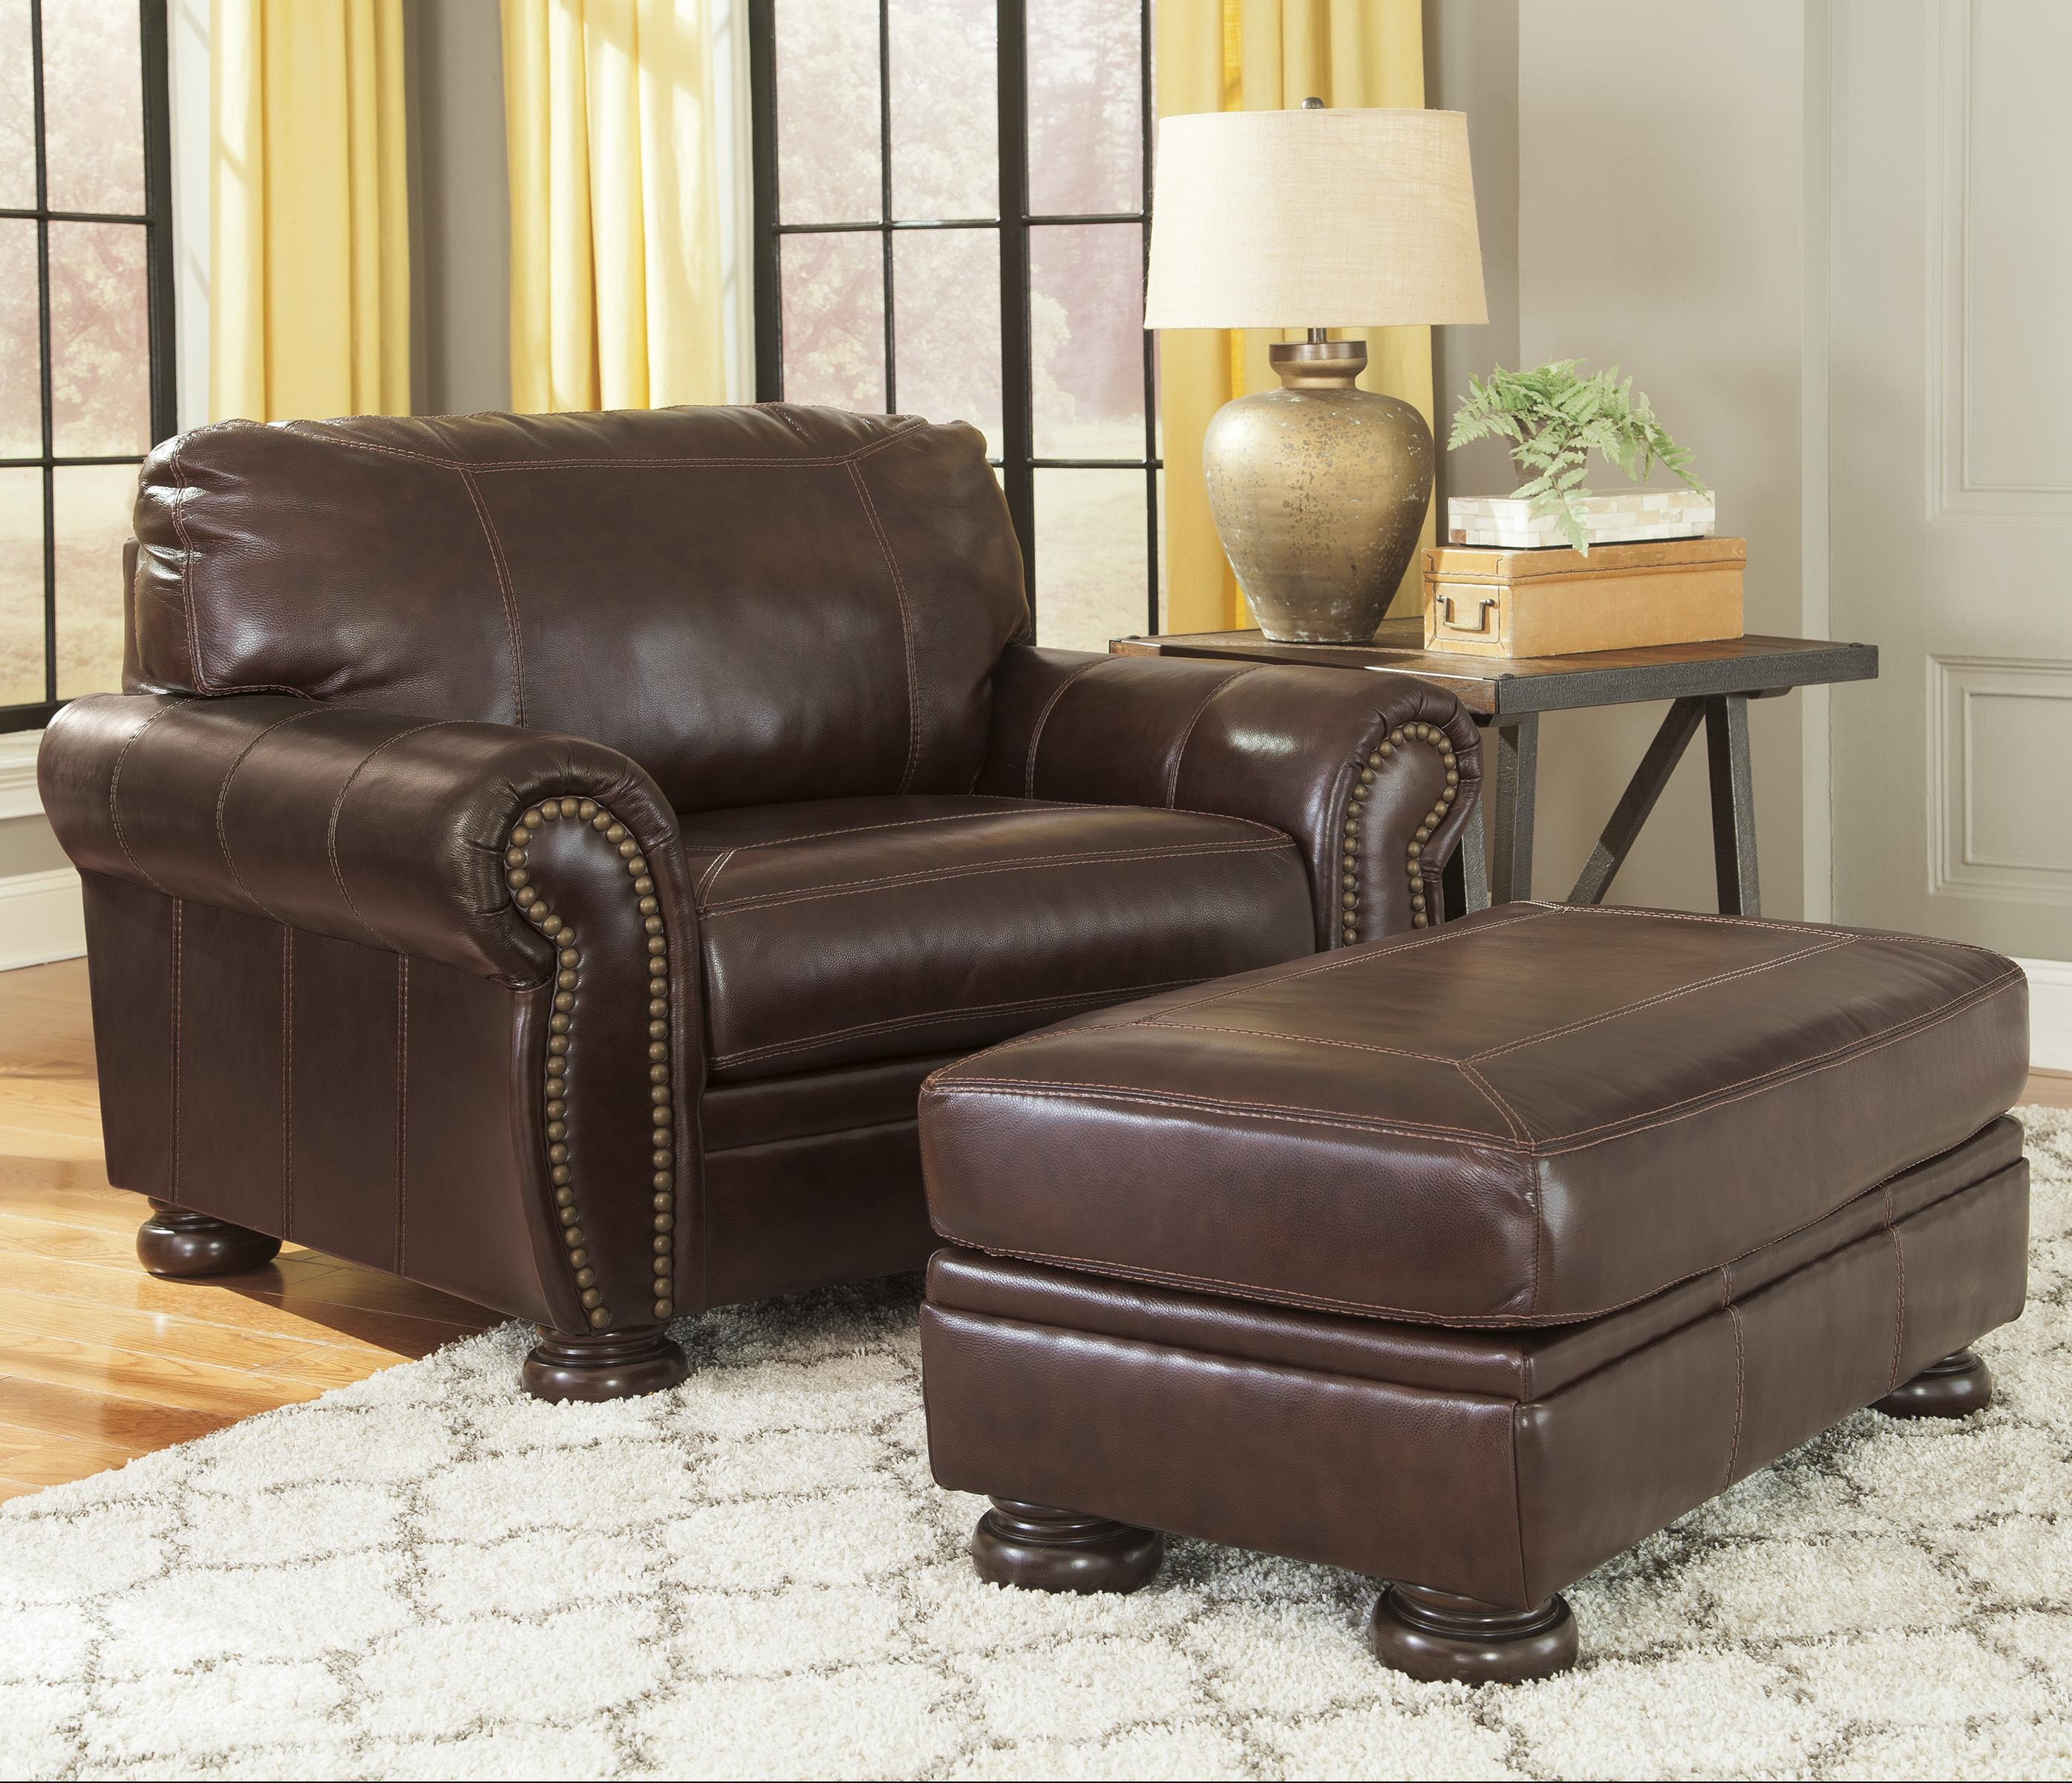 Banner Chair and a Half & Ottoman by Signature Design by Ashley at Zak's Warehouse Clearance Center